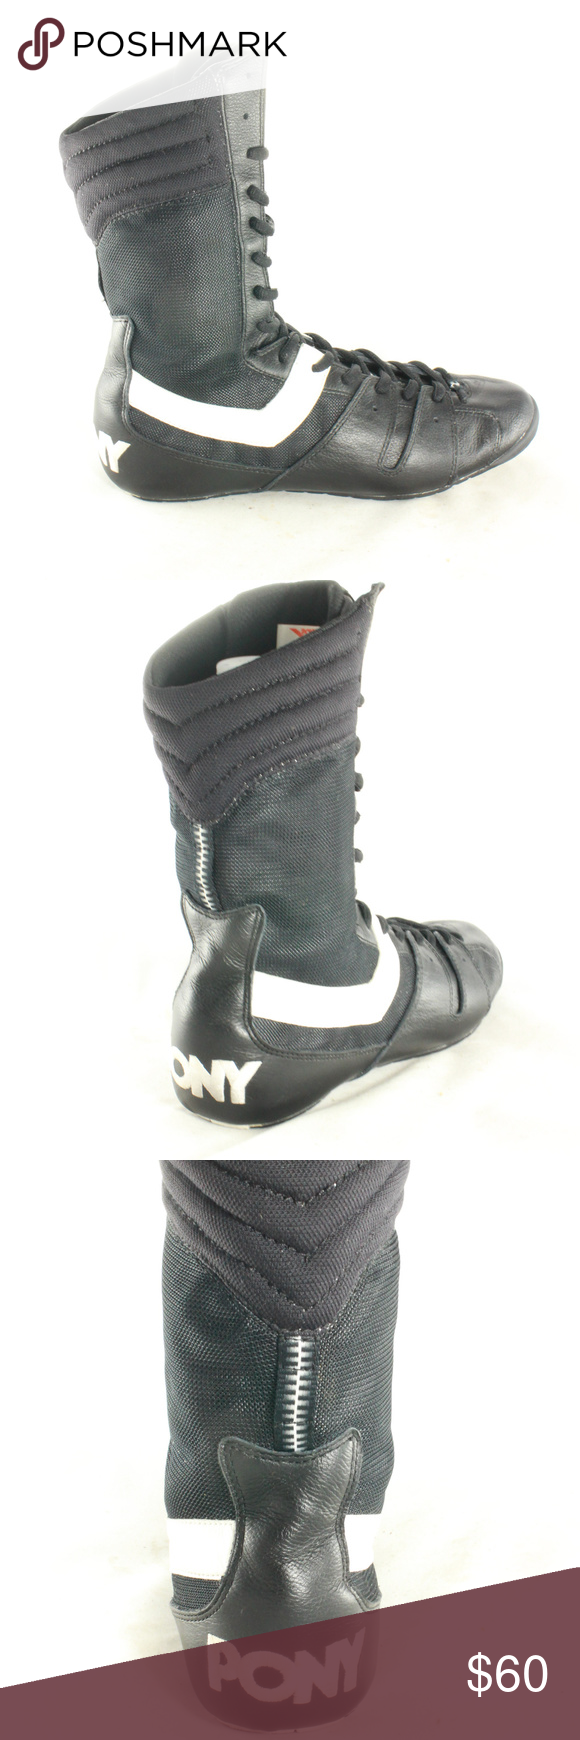 Vintage Pony Black And White Sting Boxing Shoes Like New Inside And